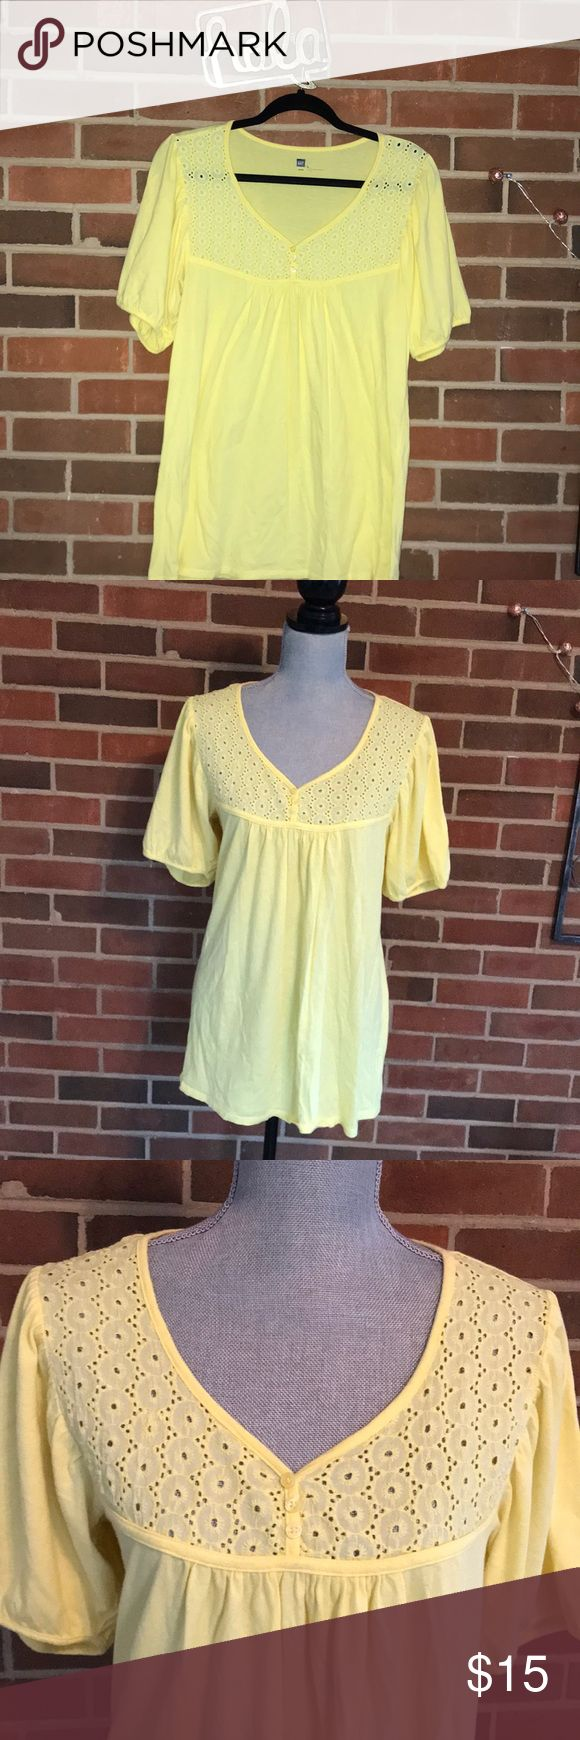 Gap T! Pale yellow short sleeve top with eyelet detail at neck! Slight pouf sleeve! Worn and washed a few times! GAP Tops Tees - Short Sleeve